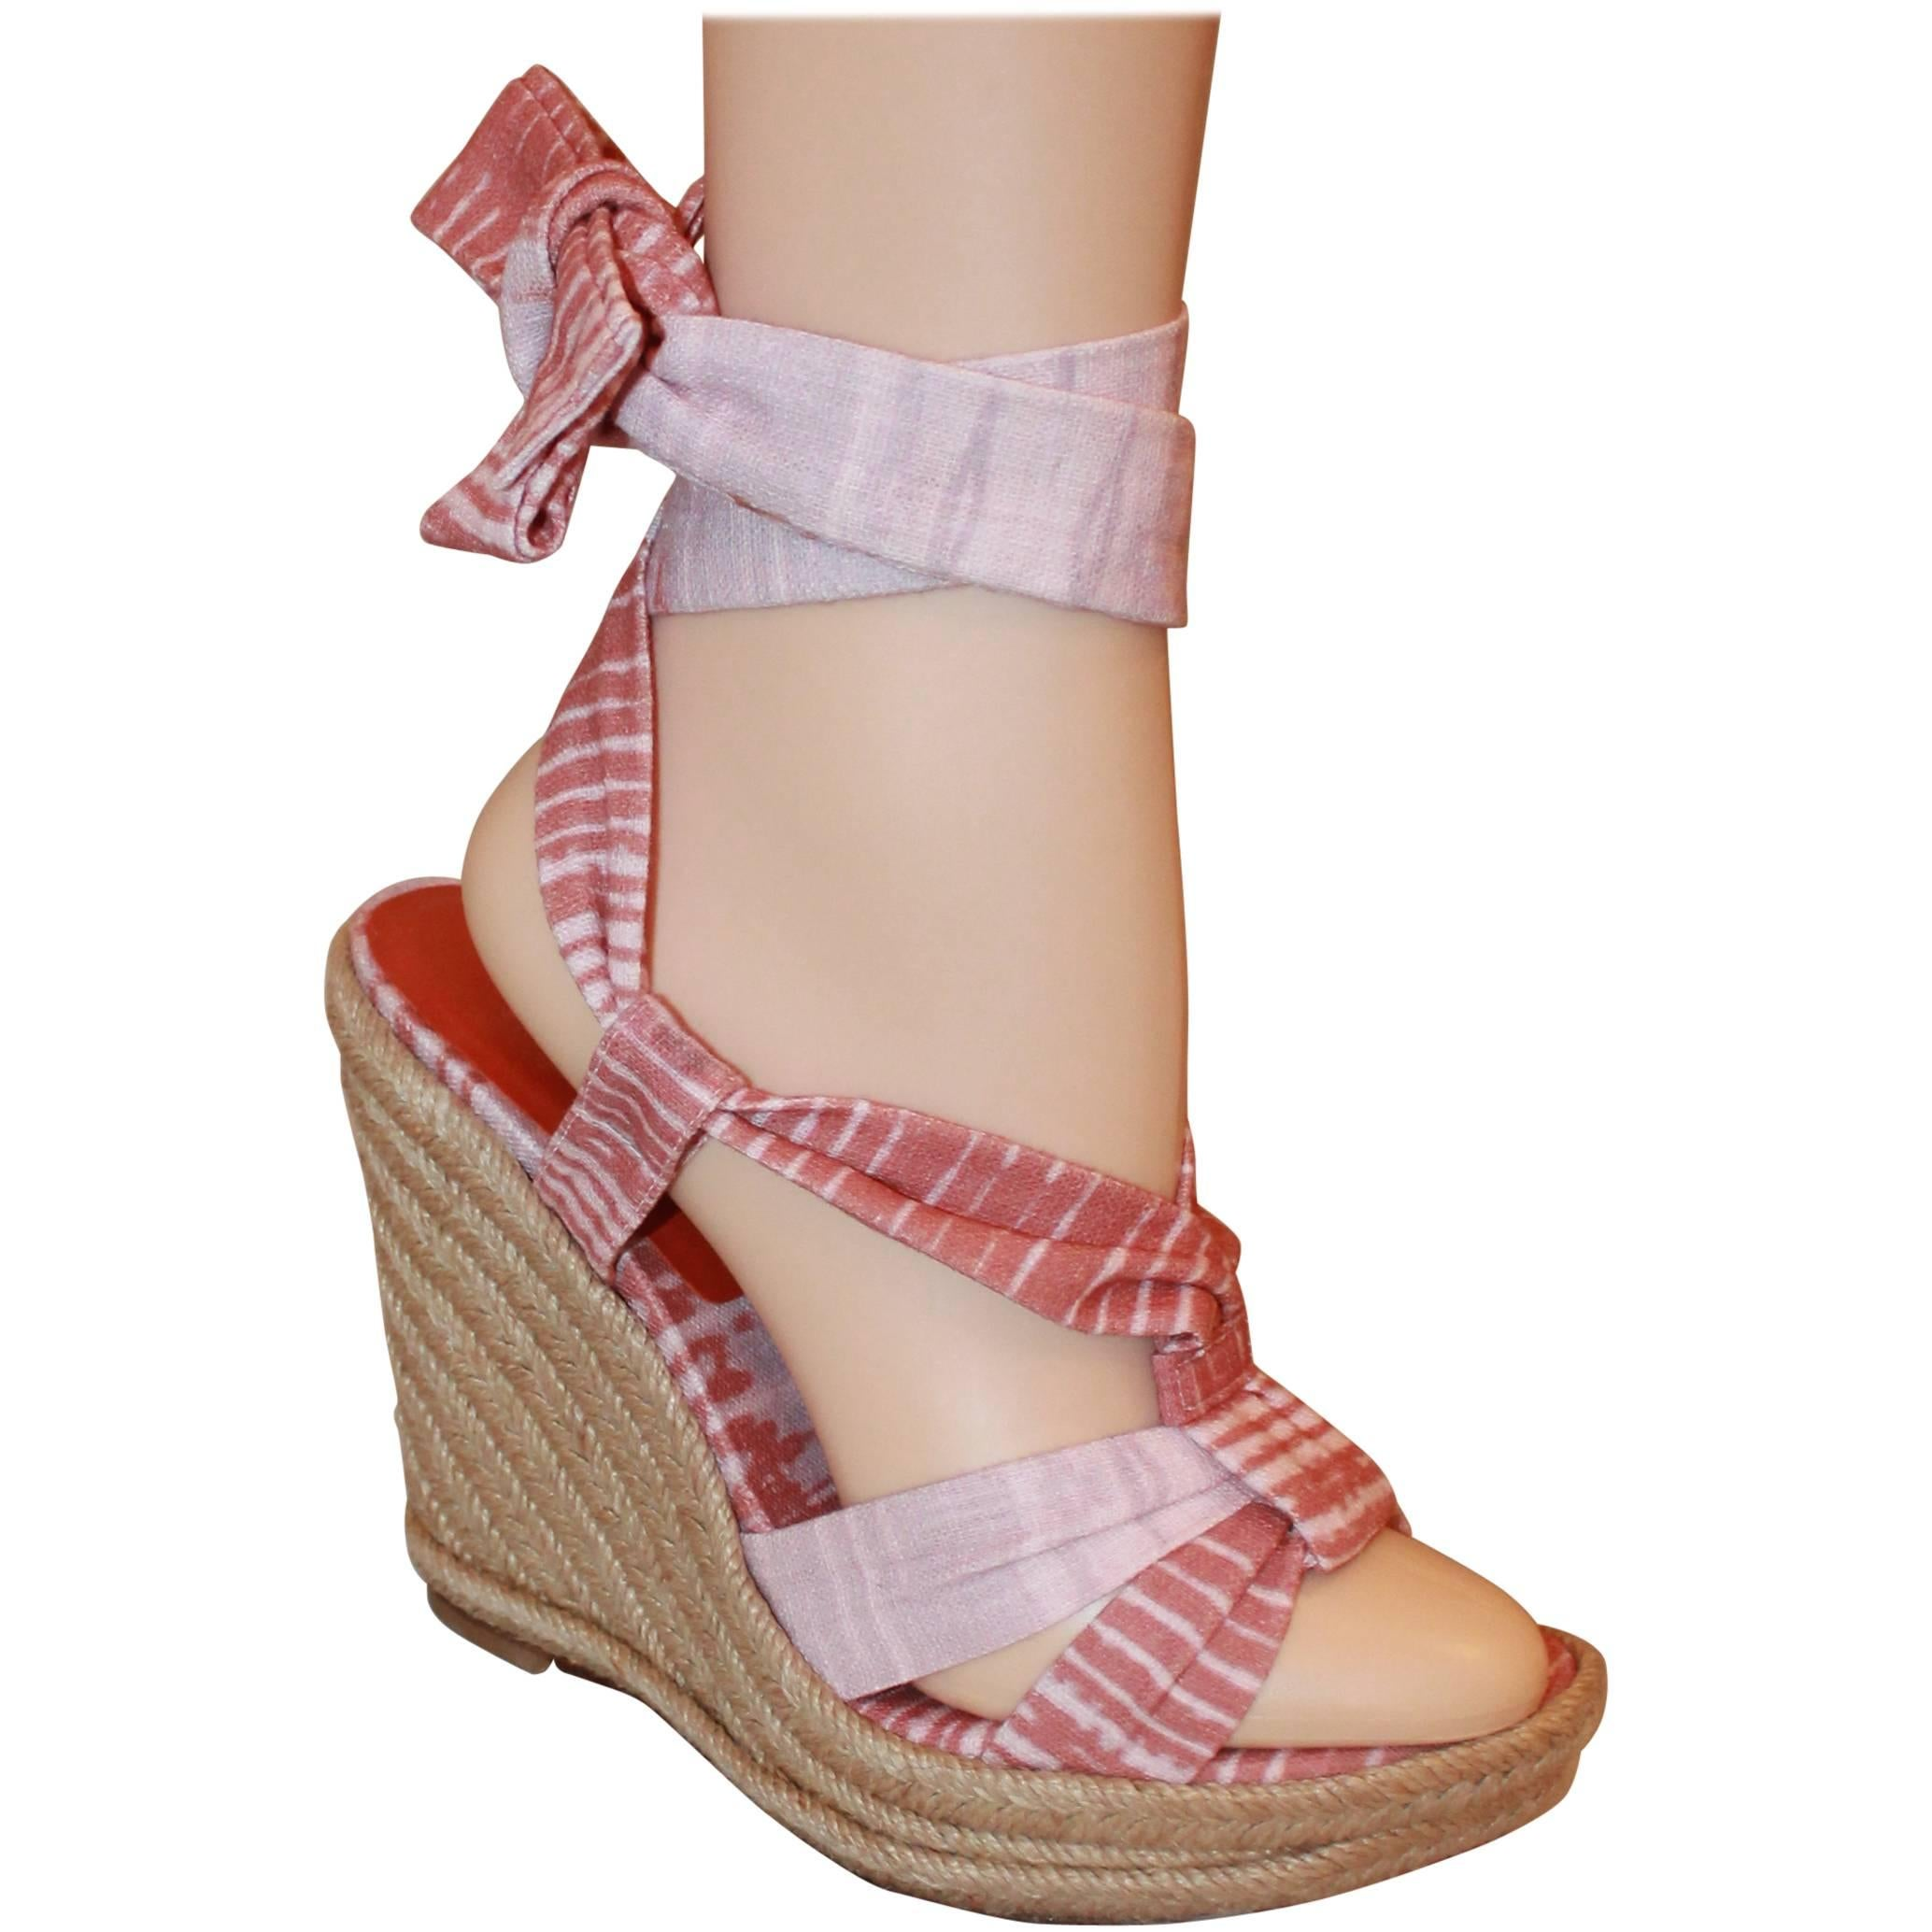 Stuart Weitzman Coral and Pink Canvas Printed Espadrille Tie-Up Wedges - 6.5